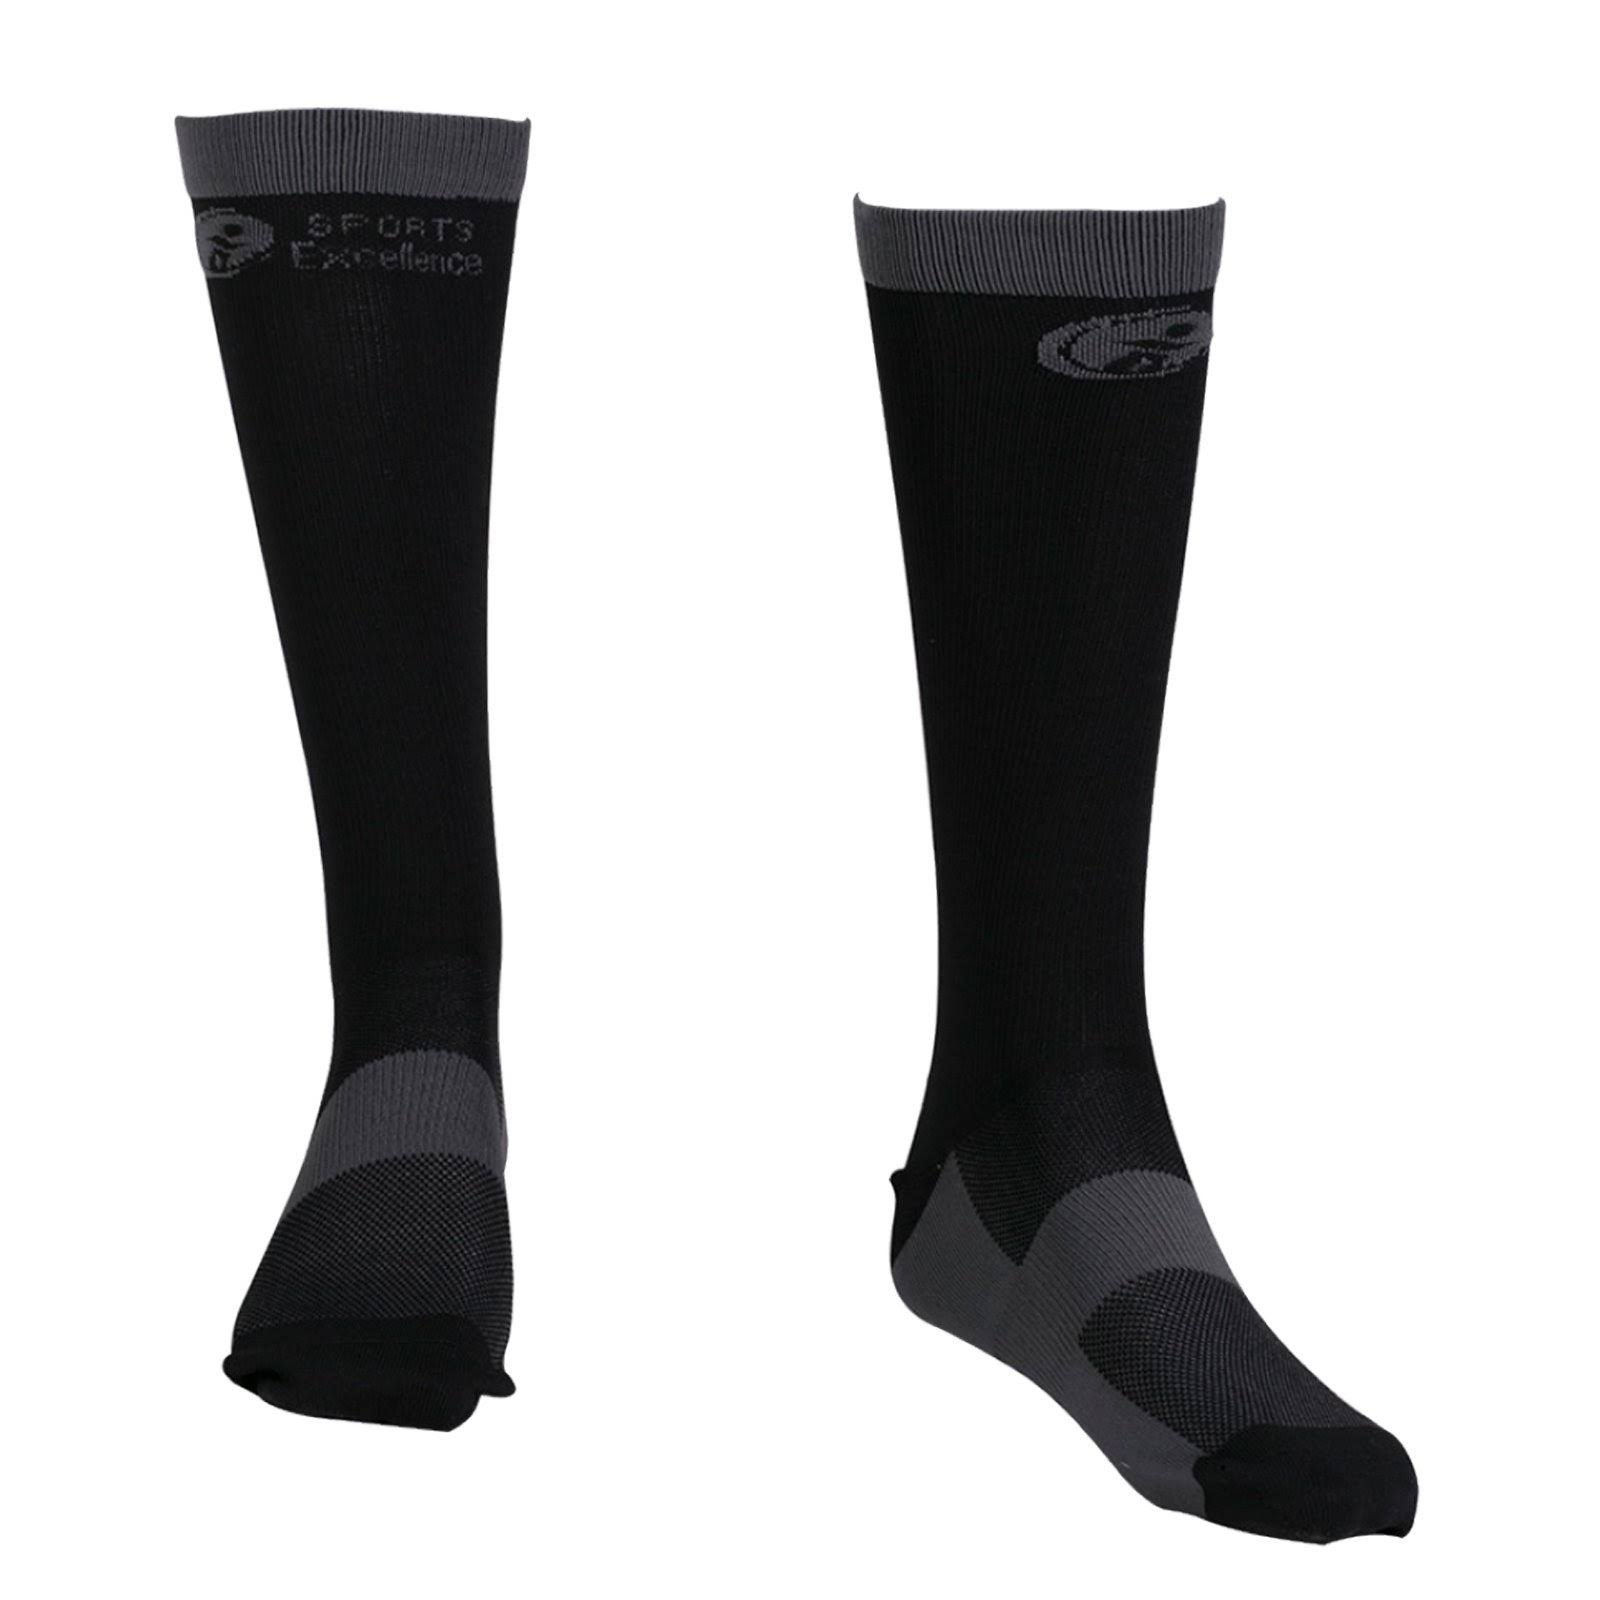 Sports Excellence Junior SMU Performance Skate Socks